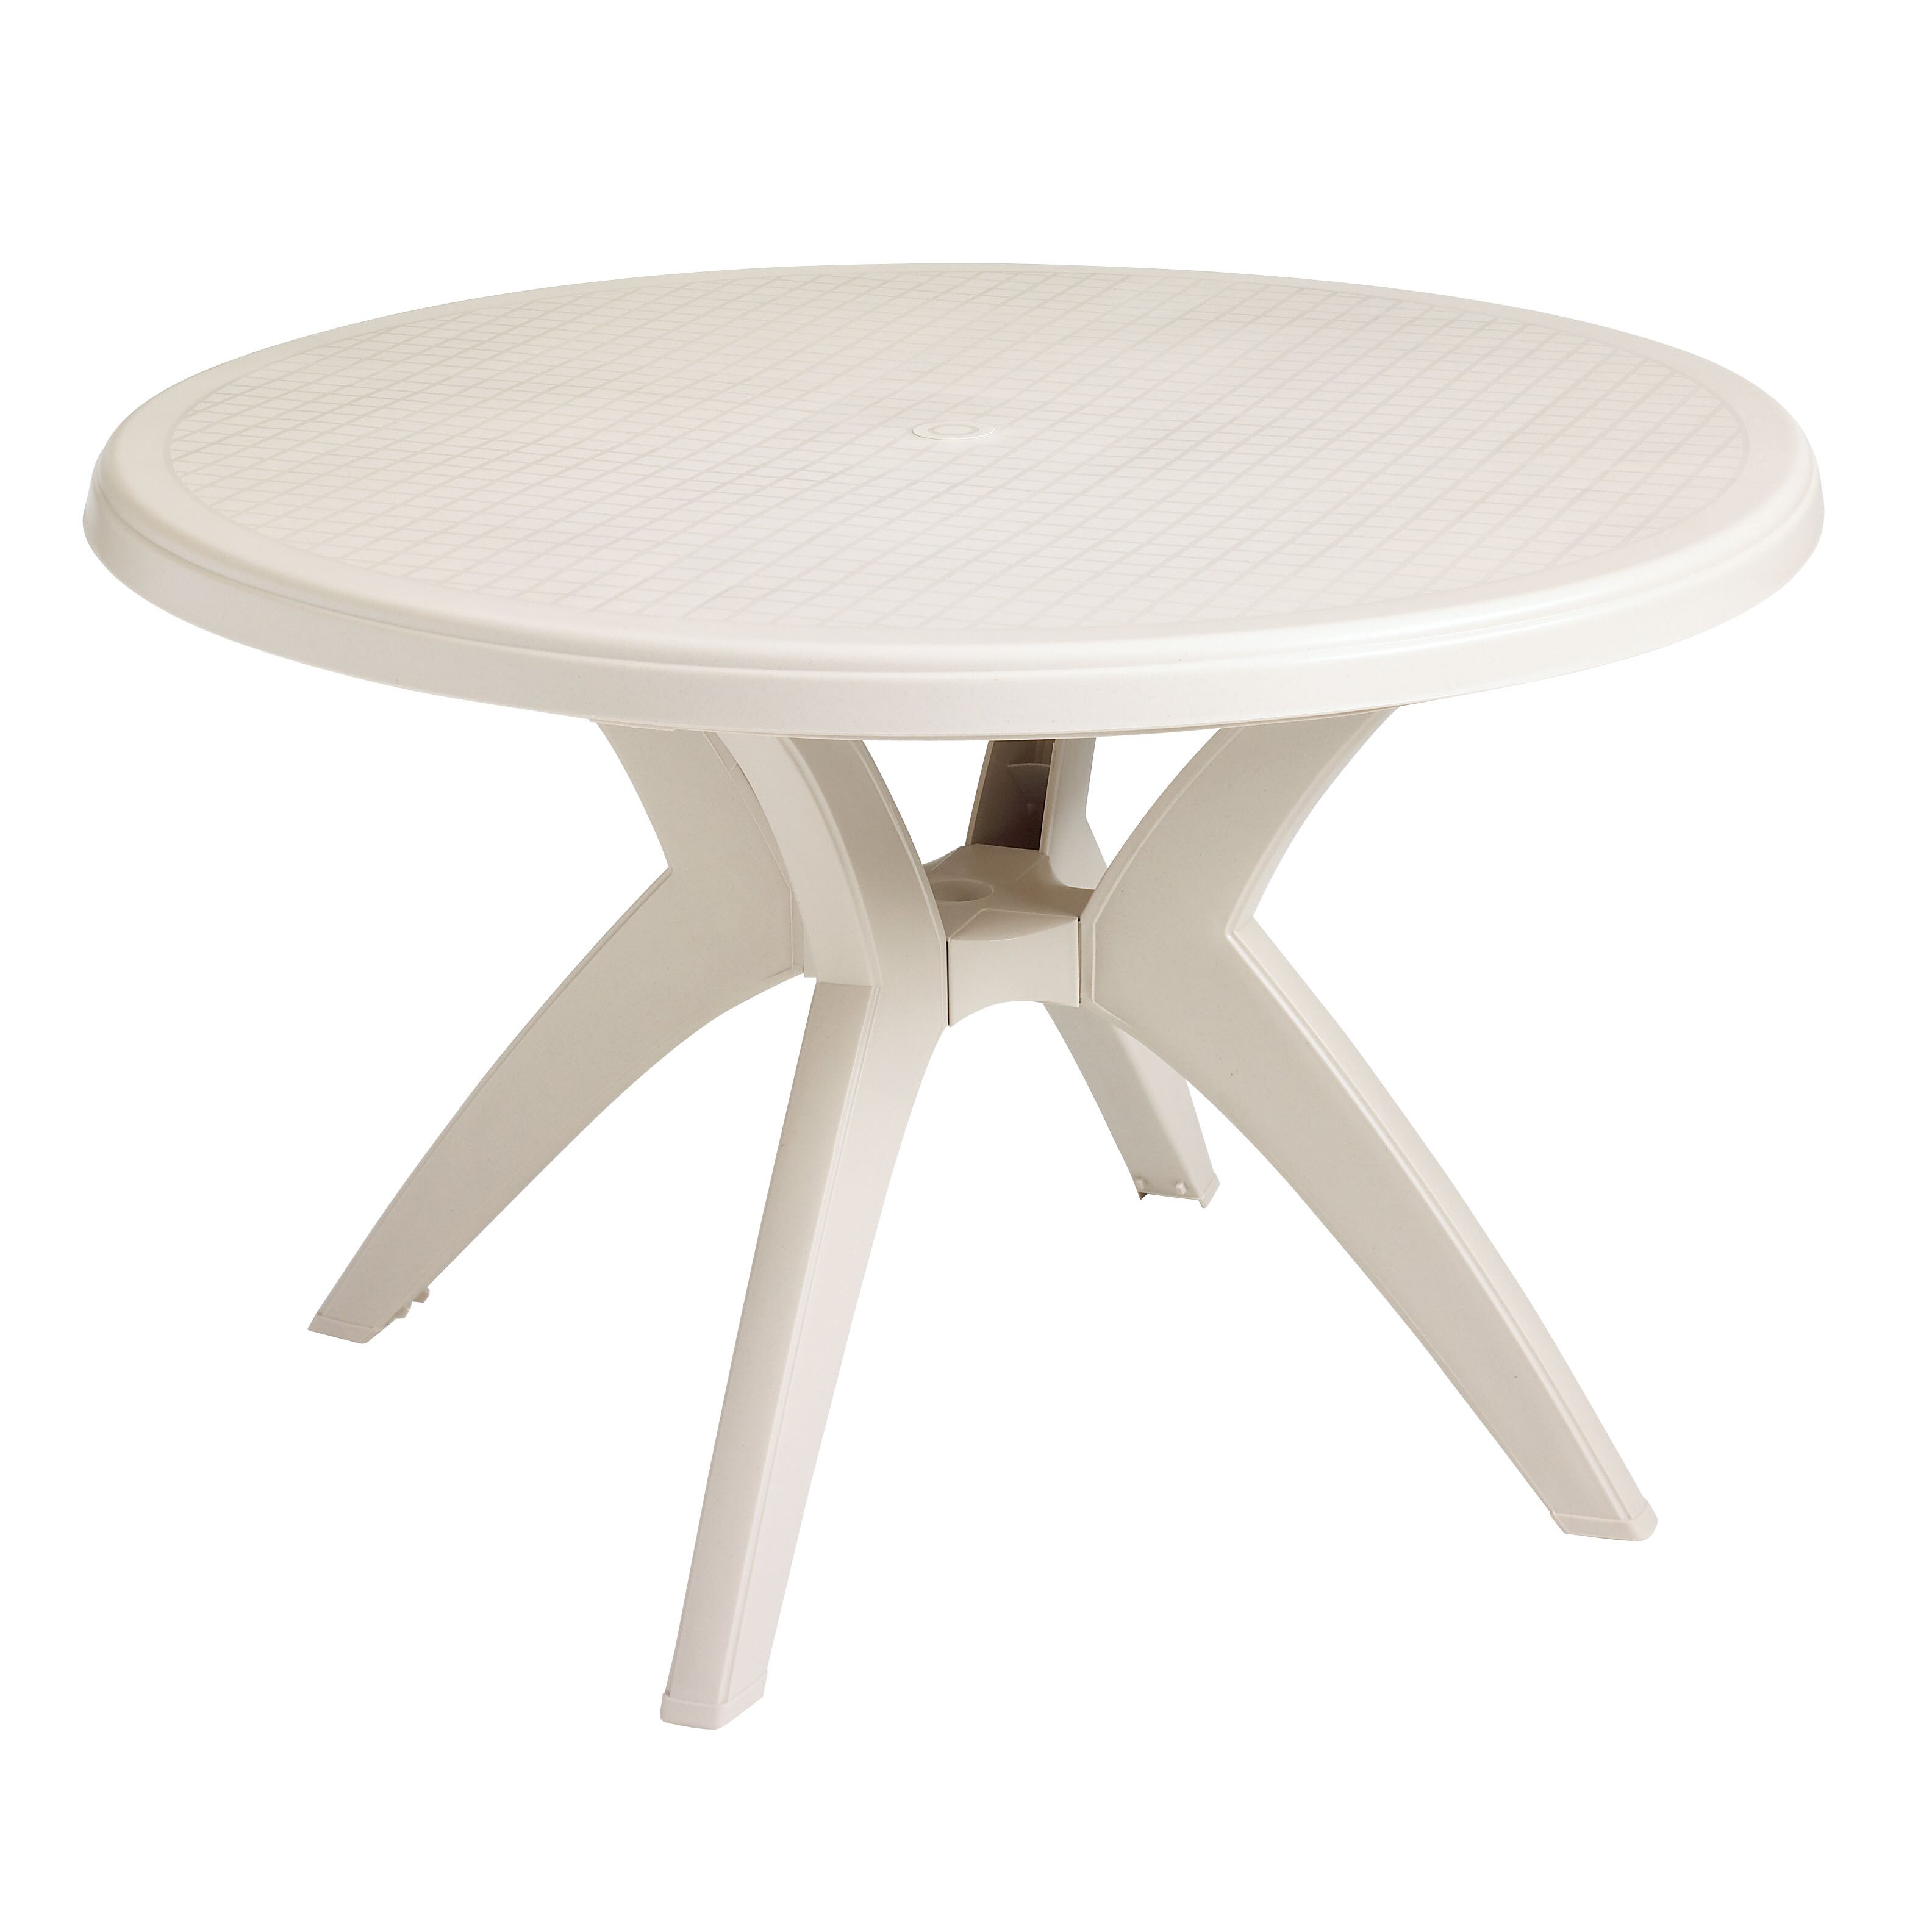 Grosfillex Commercial Resin Furniture Ibiza Dining Table